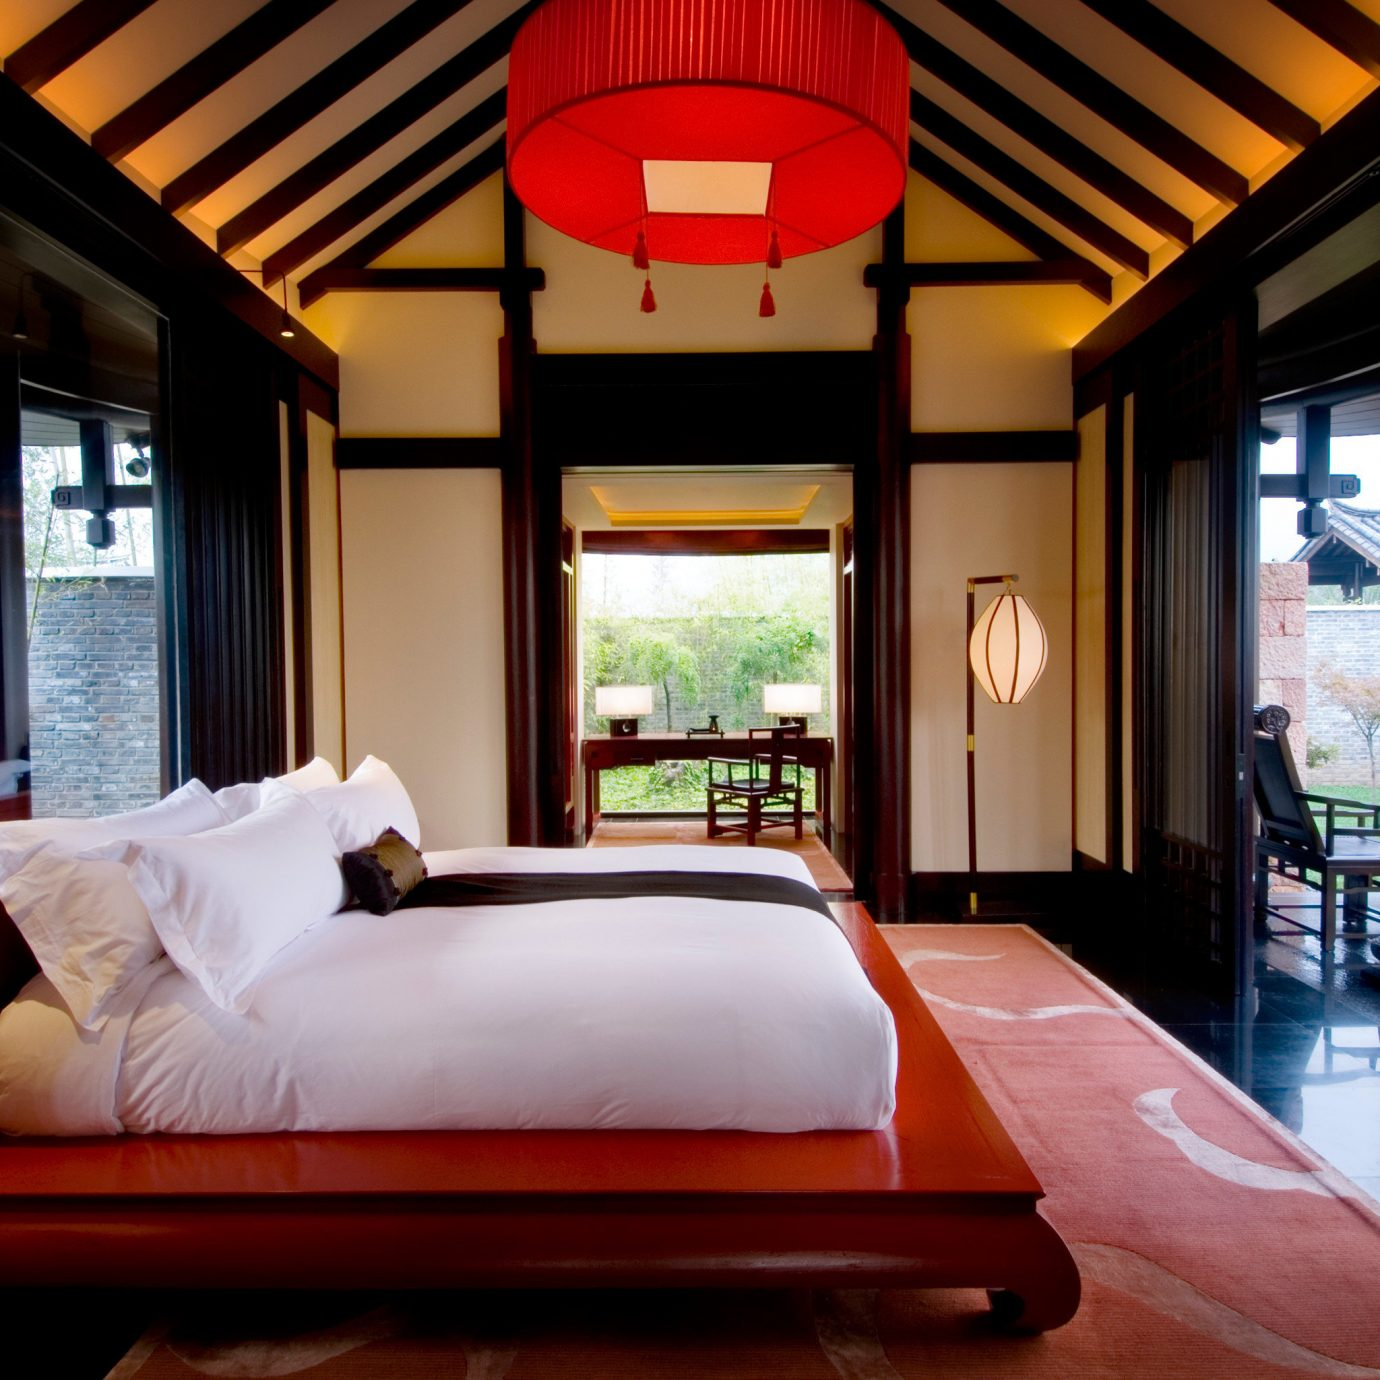 Bedroom Cultural Luxury Modern Suite property Resort red home living room Villa condominium